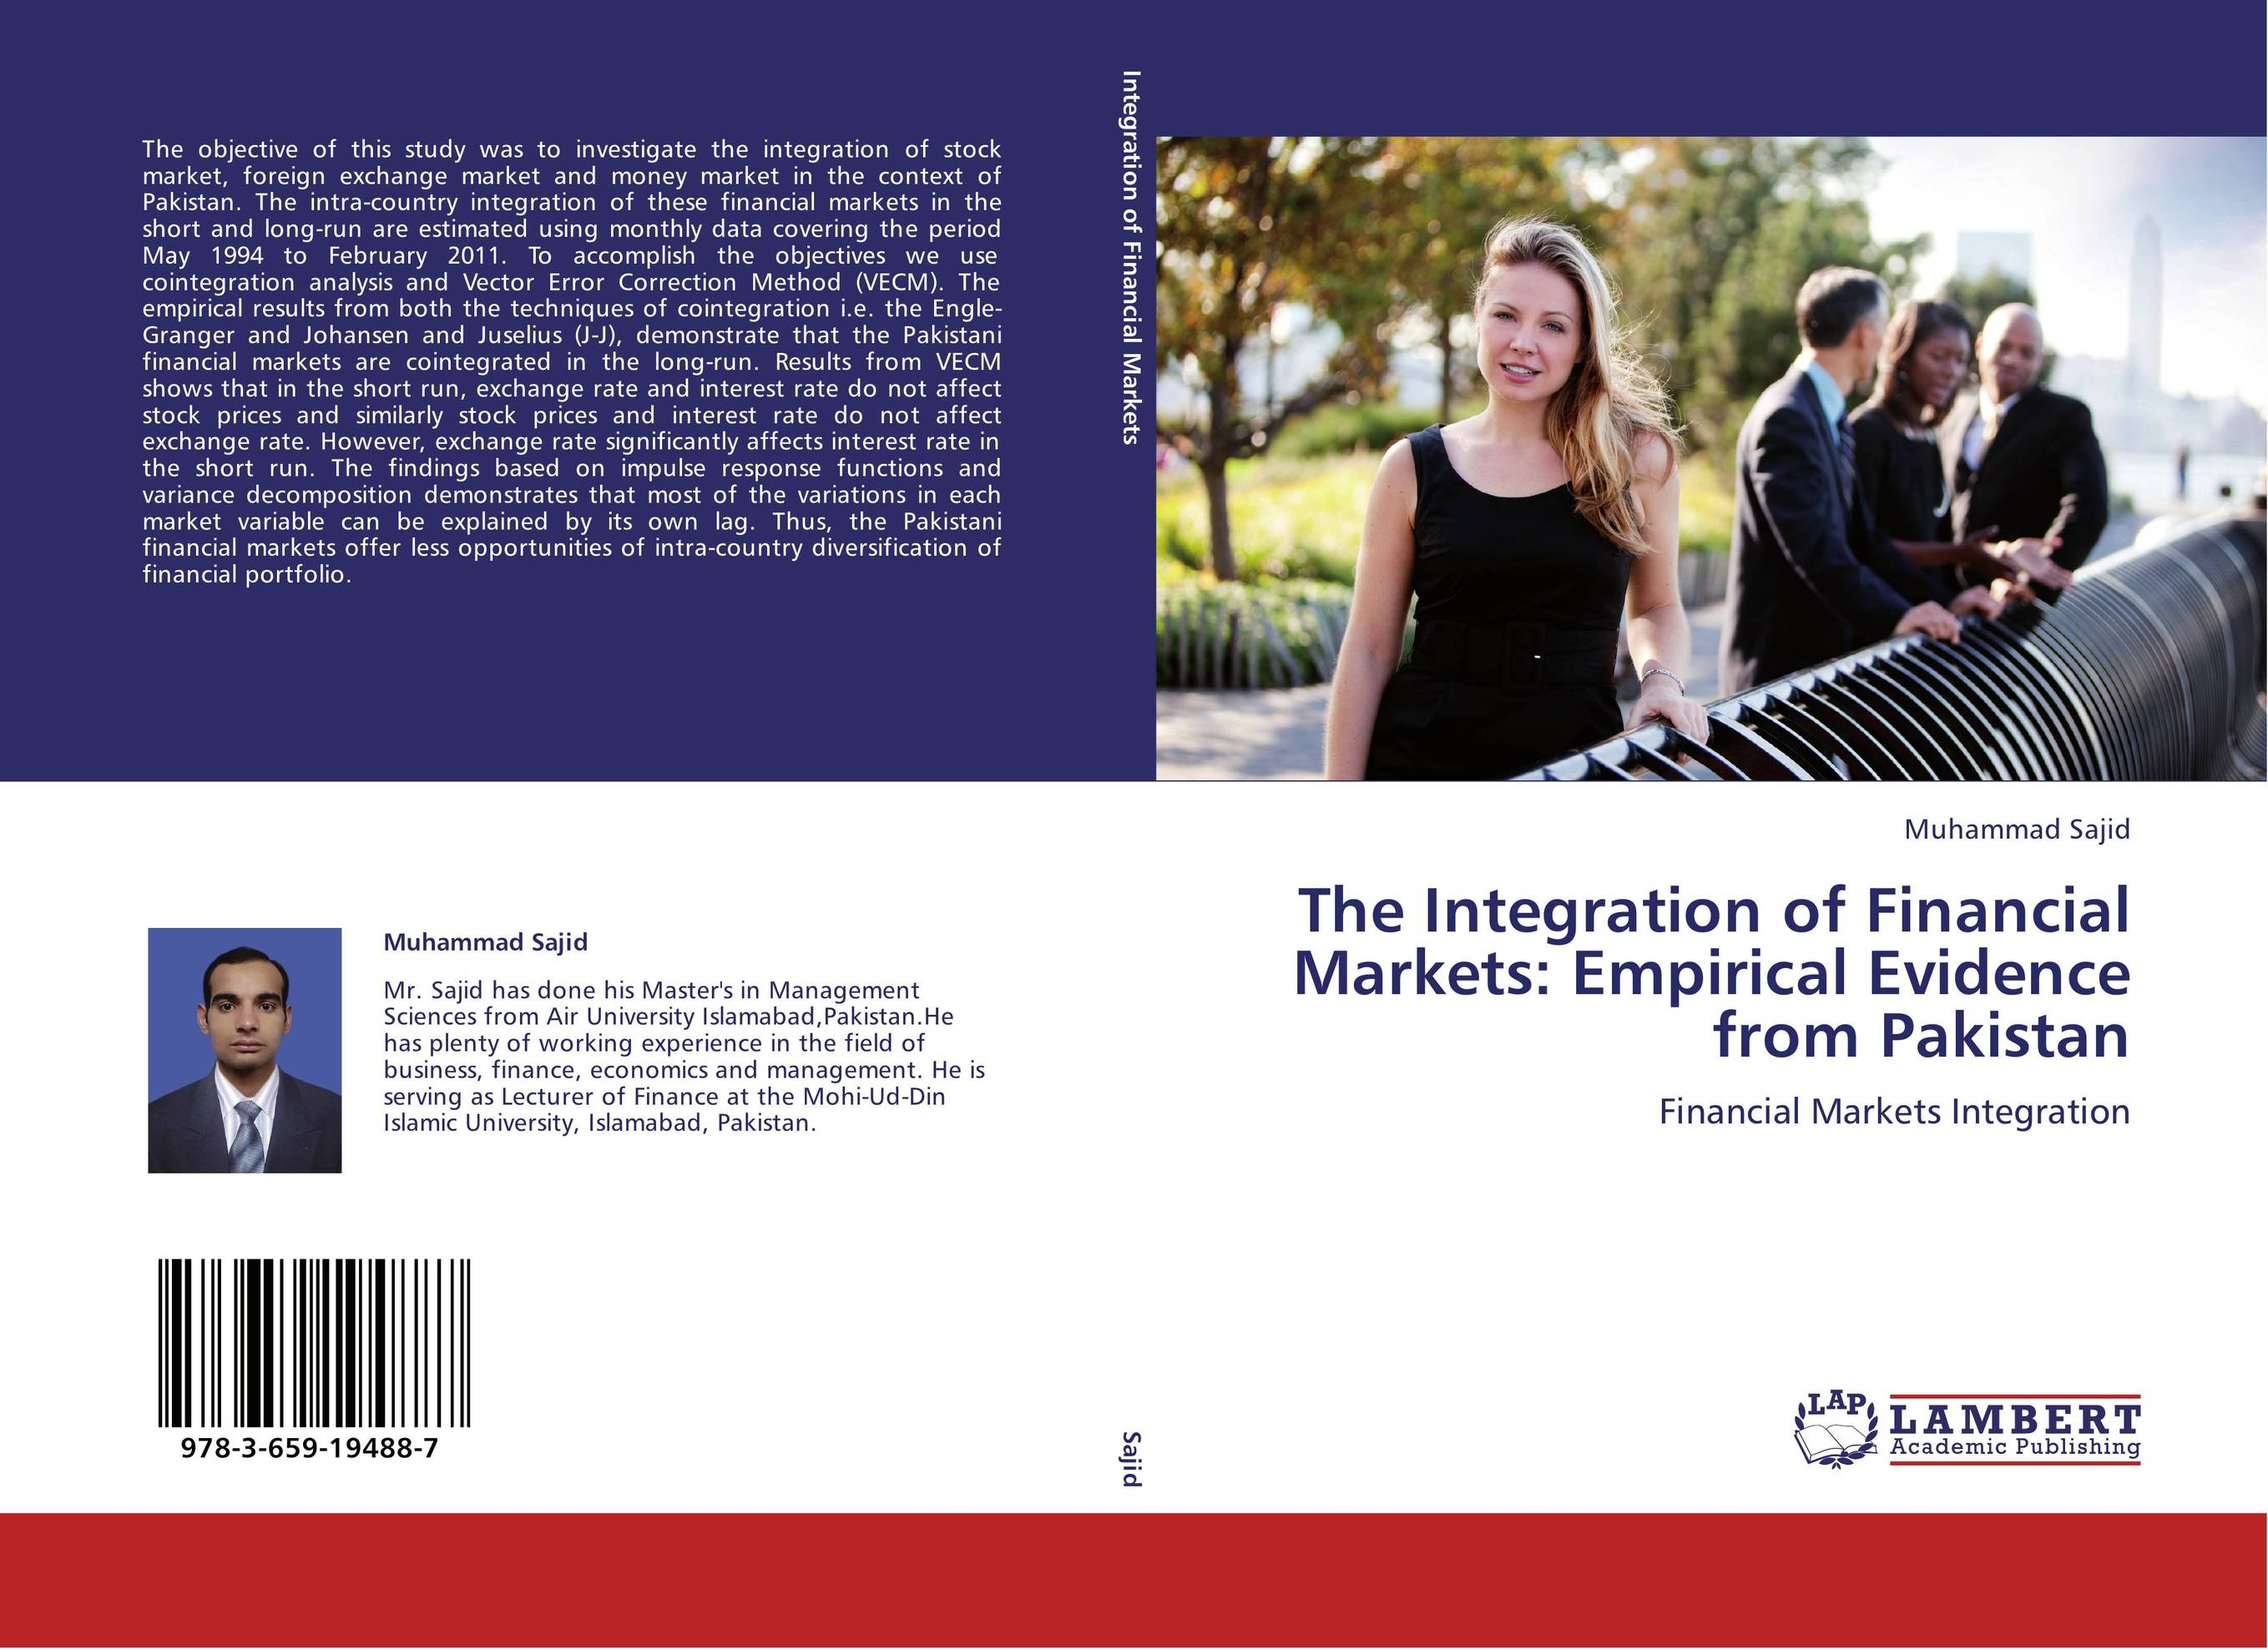 The Integration of Financial Markets: Empirical Evidence from Pakistan купить